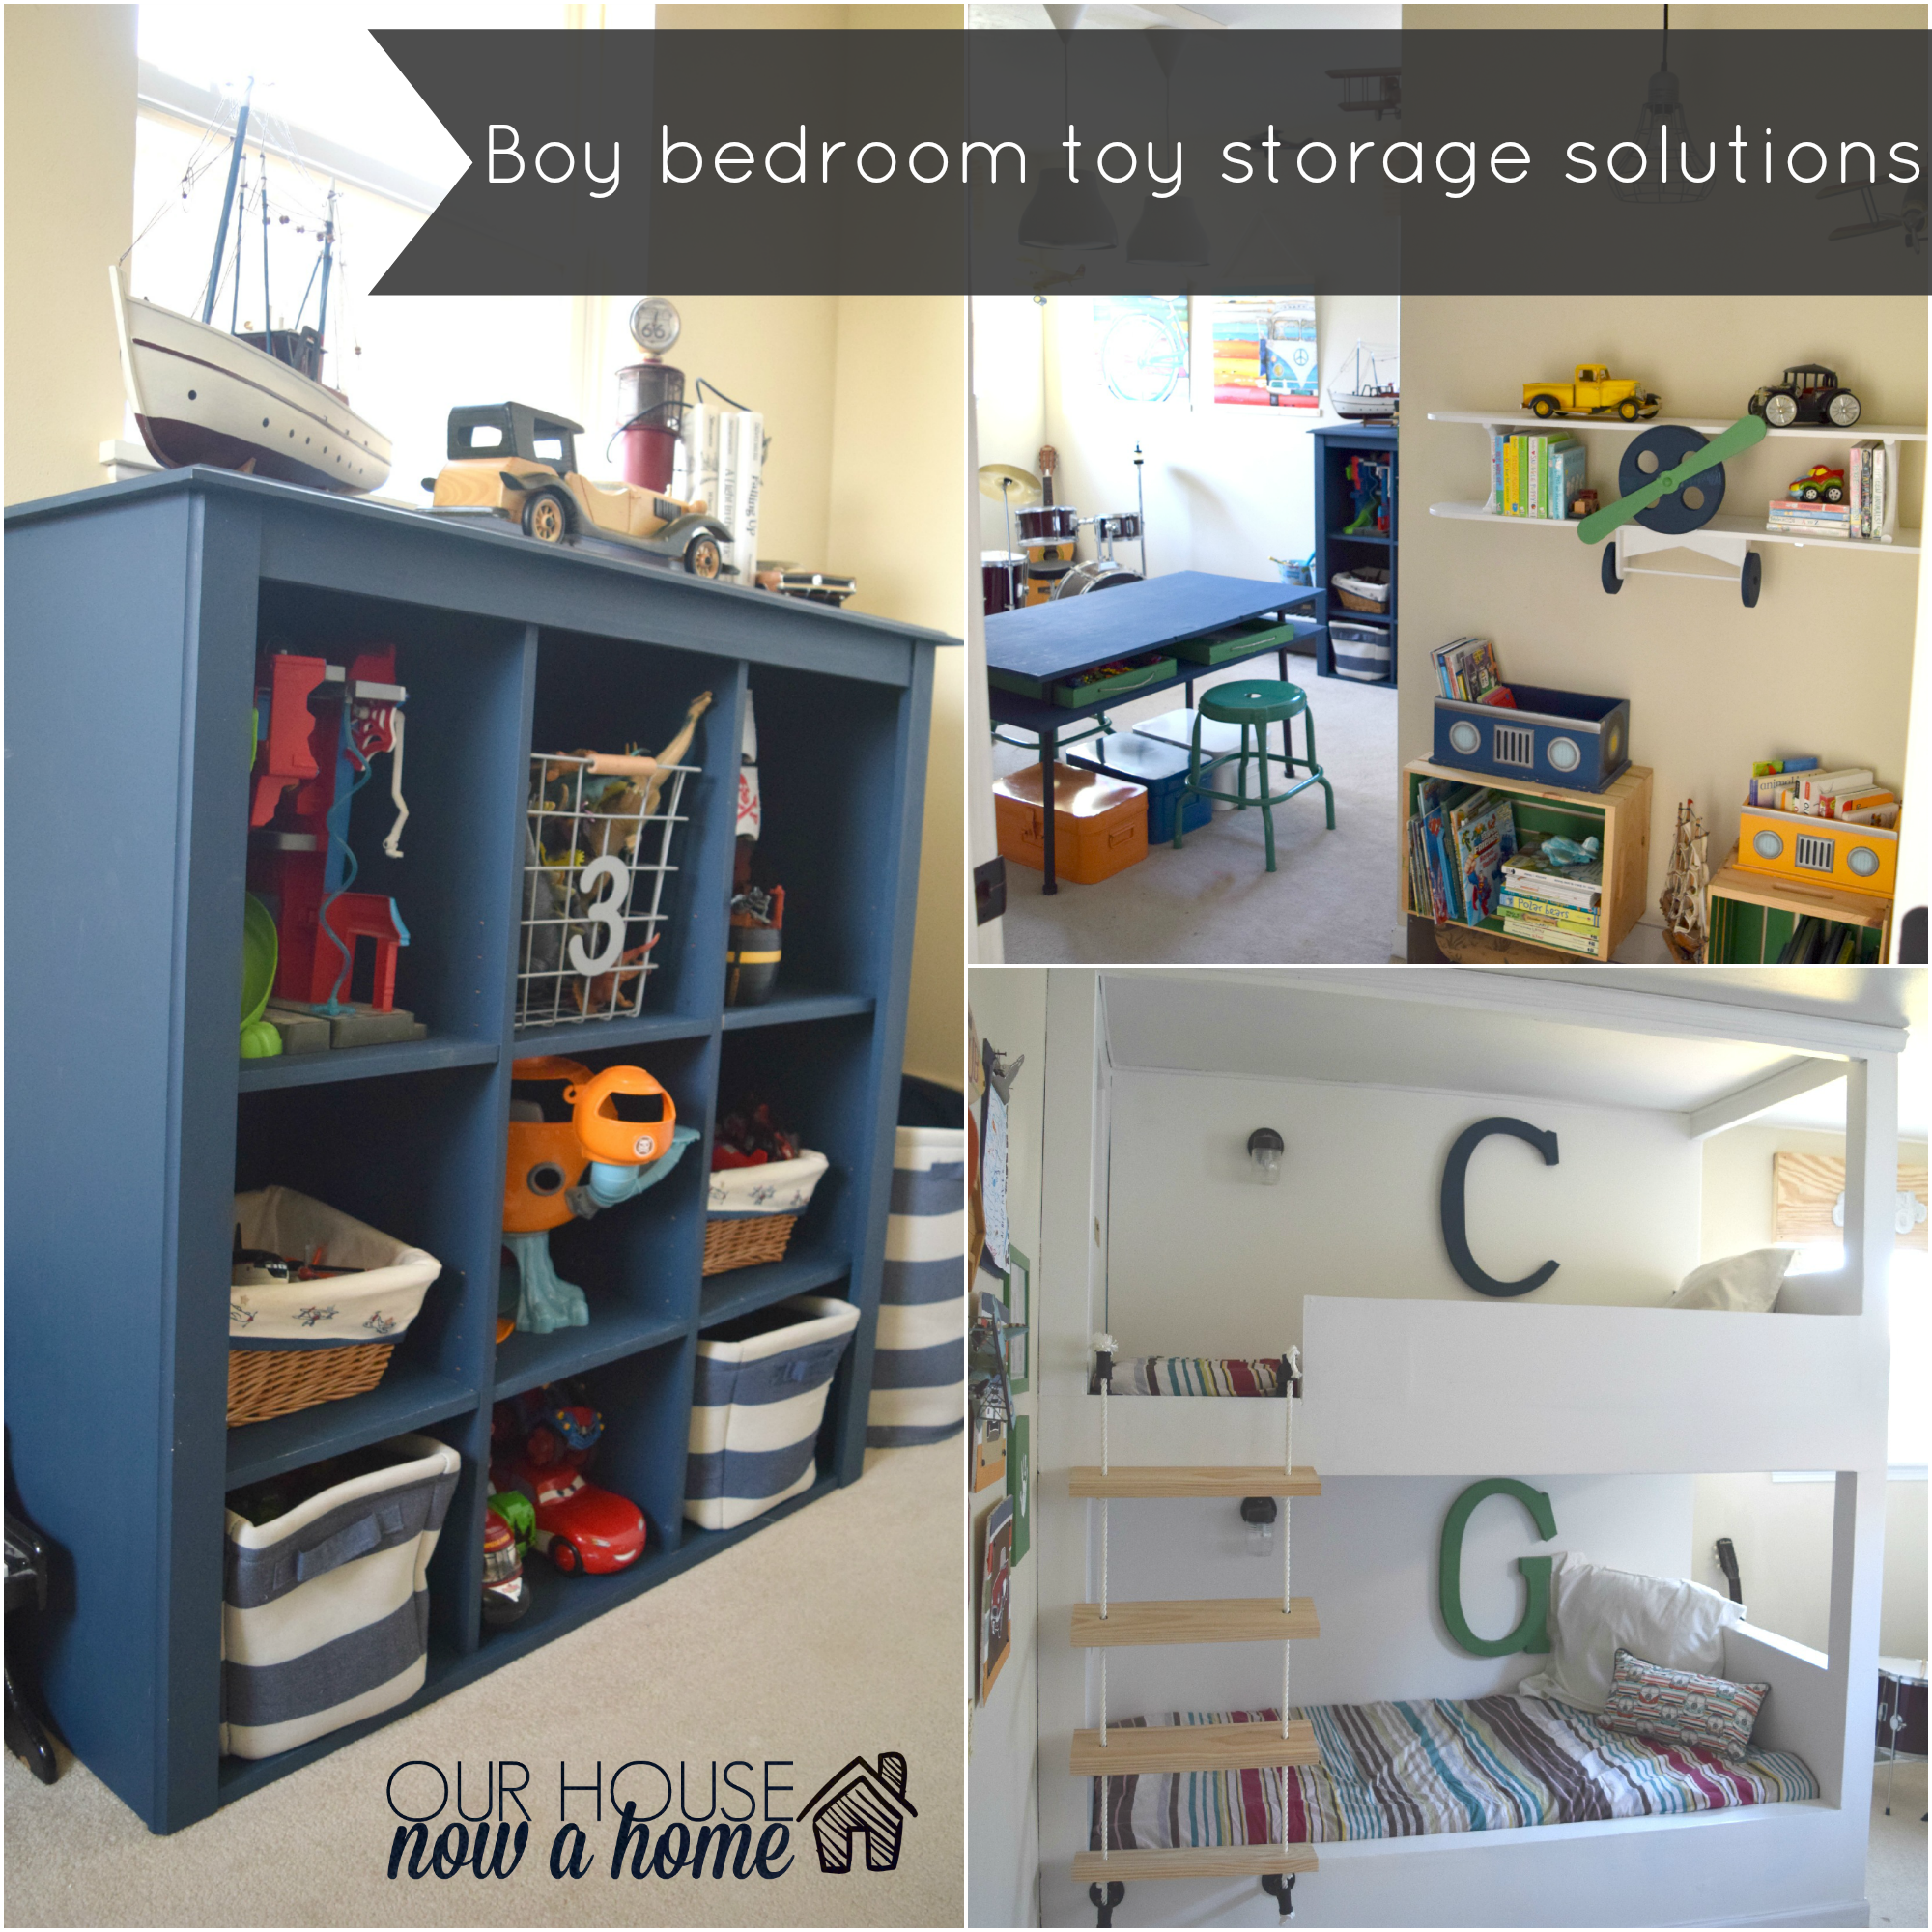 A simple way to organize toys our house now a home - Small space storage solutions for bedroom ideas ...